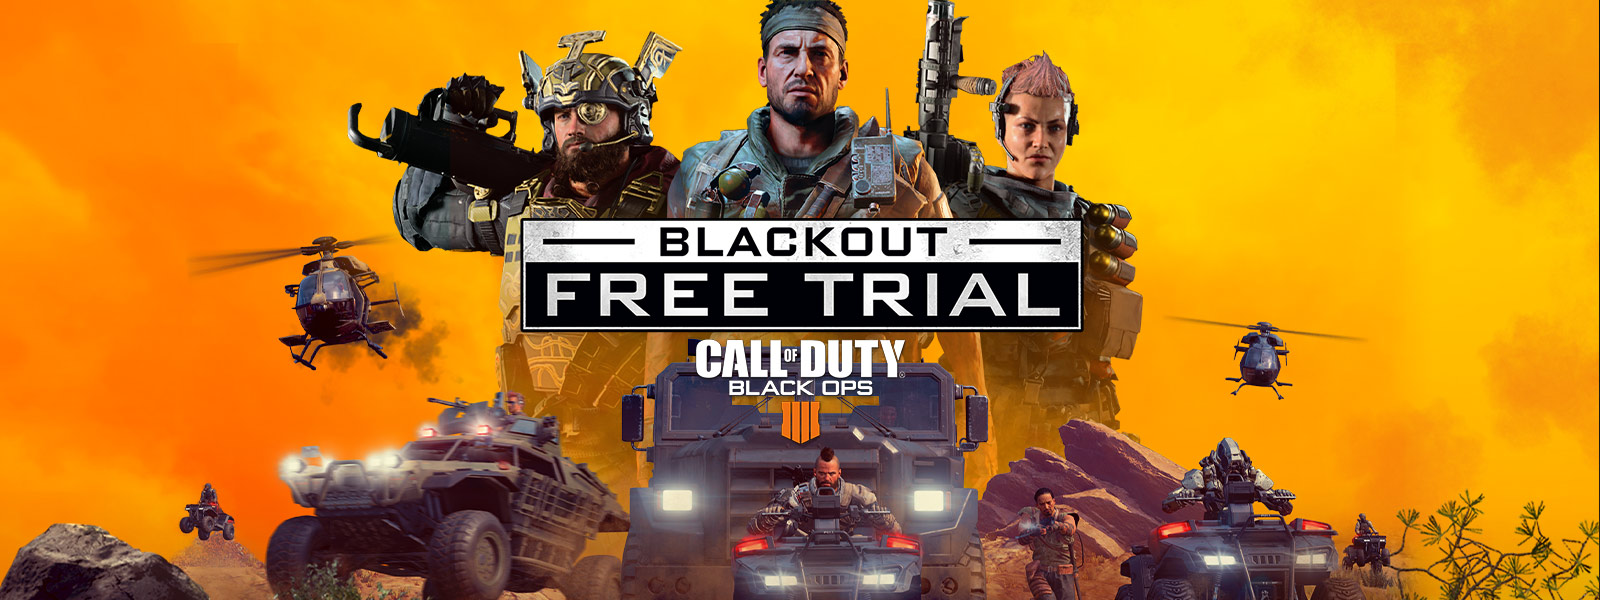 Blackout Free Trial for Call of Duty Black Ops 4, 3 specialist characters stand over multiple vehicles facing the screen